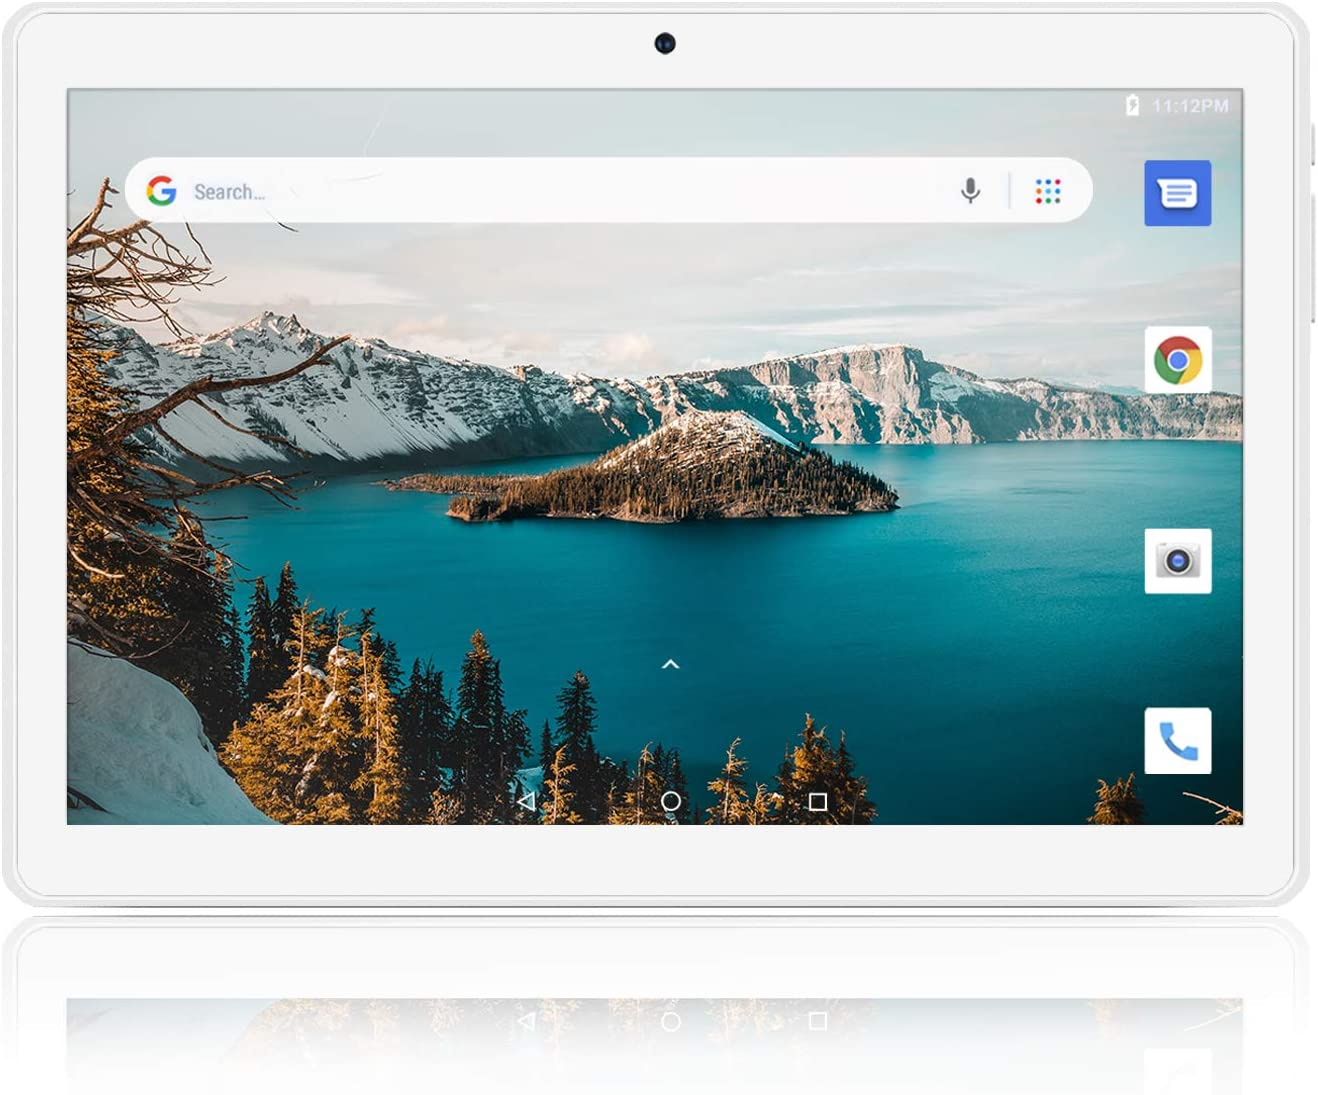 Tablet 10 inch, 5G WiFi Tablet, Android 8.1 Go, 16GB, Dual Camera, 1280x800 IPS Display, GPS, Bluetooth, Google Certified PC - Silver